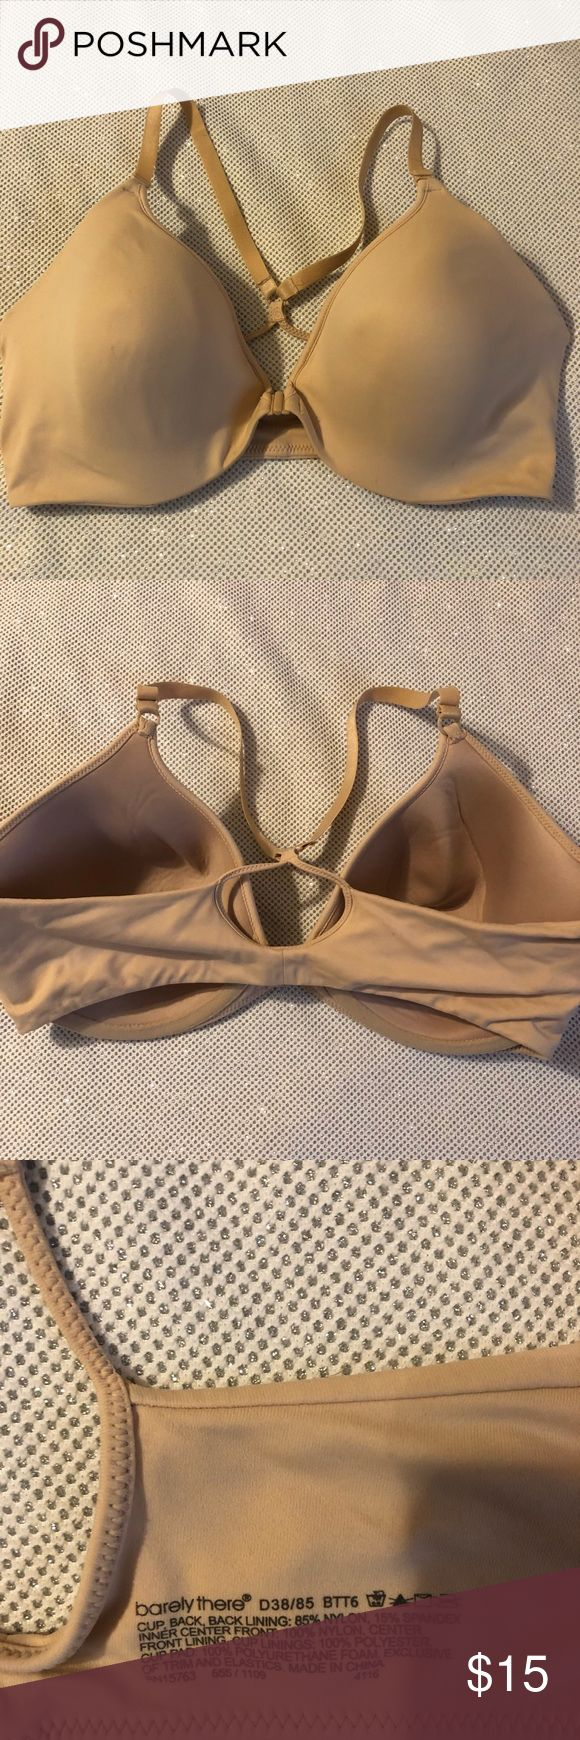 Barely There Bra Barely There Bra 38D. Racerback style with front closure.                                                      SIZE:38D MATERIAL:85% Nylon and 15% Spandex CARE:Hand Wash Cold CONDITION:Preowned, Excellent condition  • Ships only within US. • From a smoke and pet free   environment. • Please feel free to ask me any questions.  ❤️All reasonable offers will be considered. Please do not offer 50% below the listing price. Thank you😊 Barely There Intimates & Sleepwear Bras